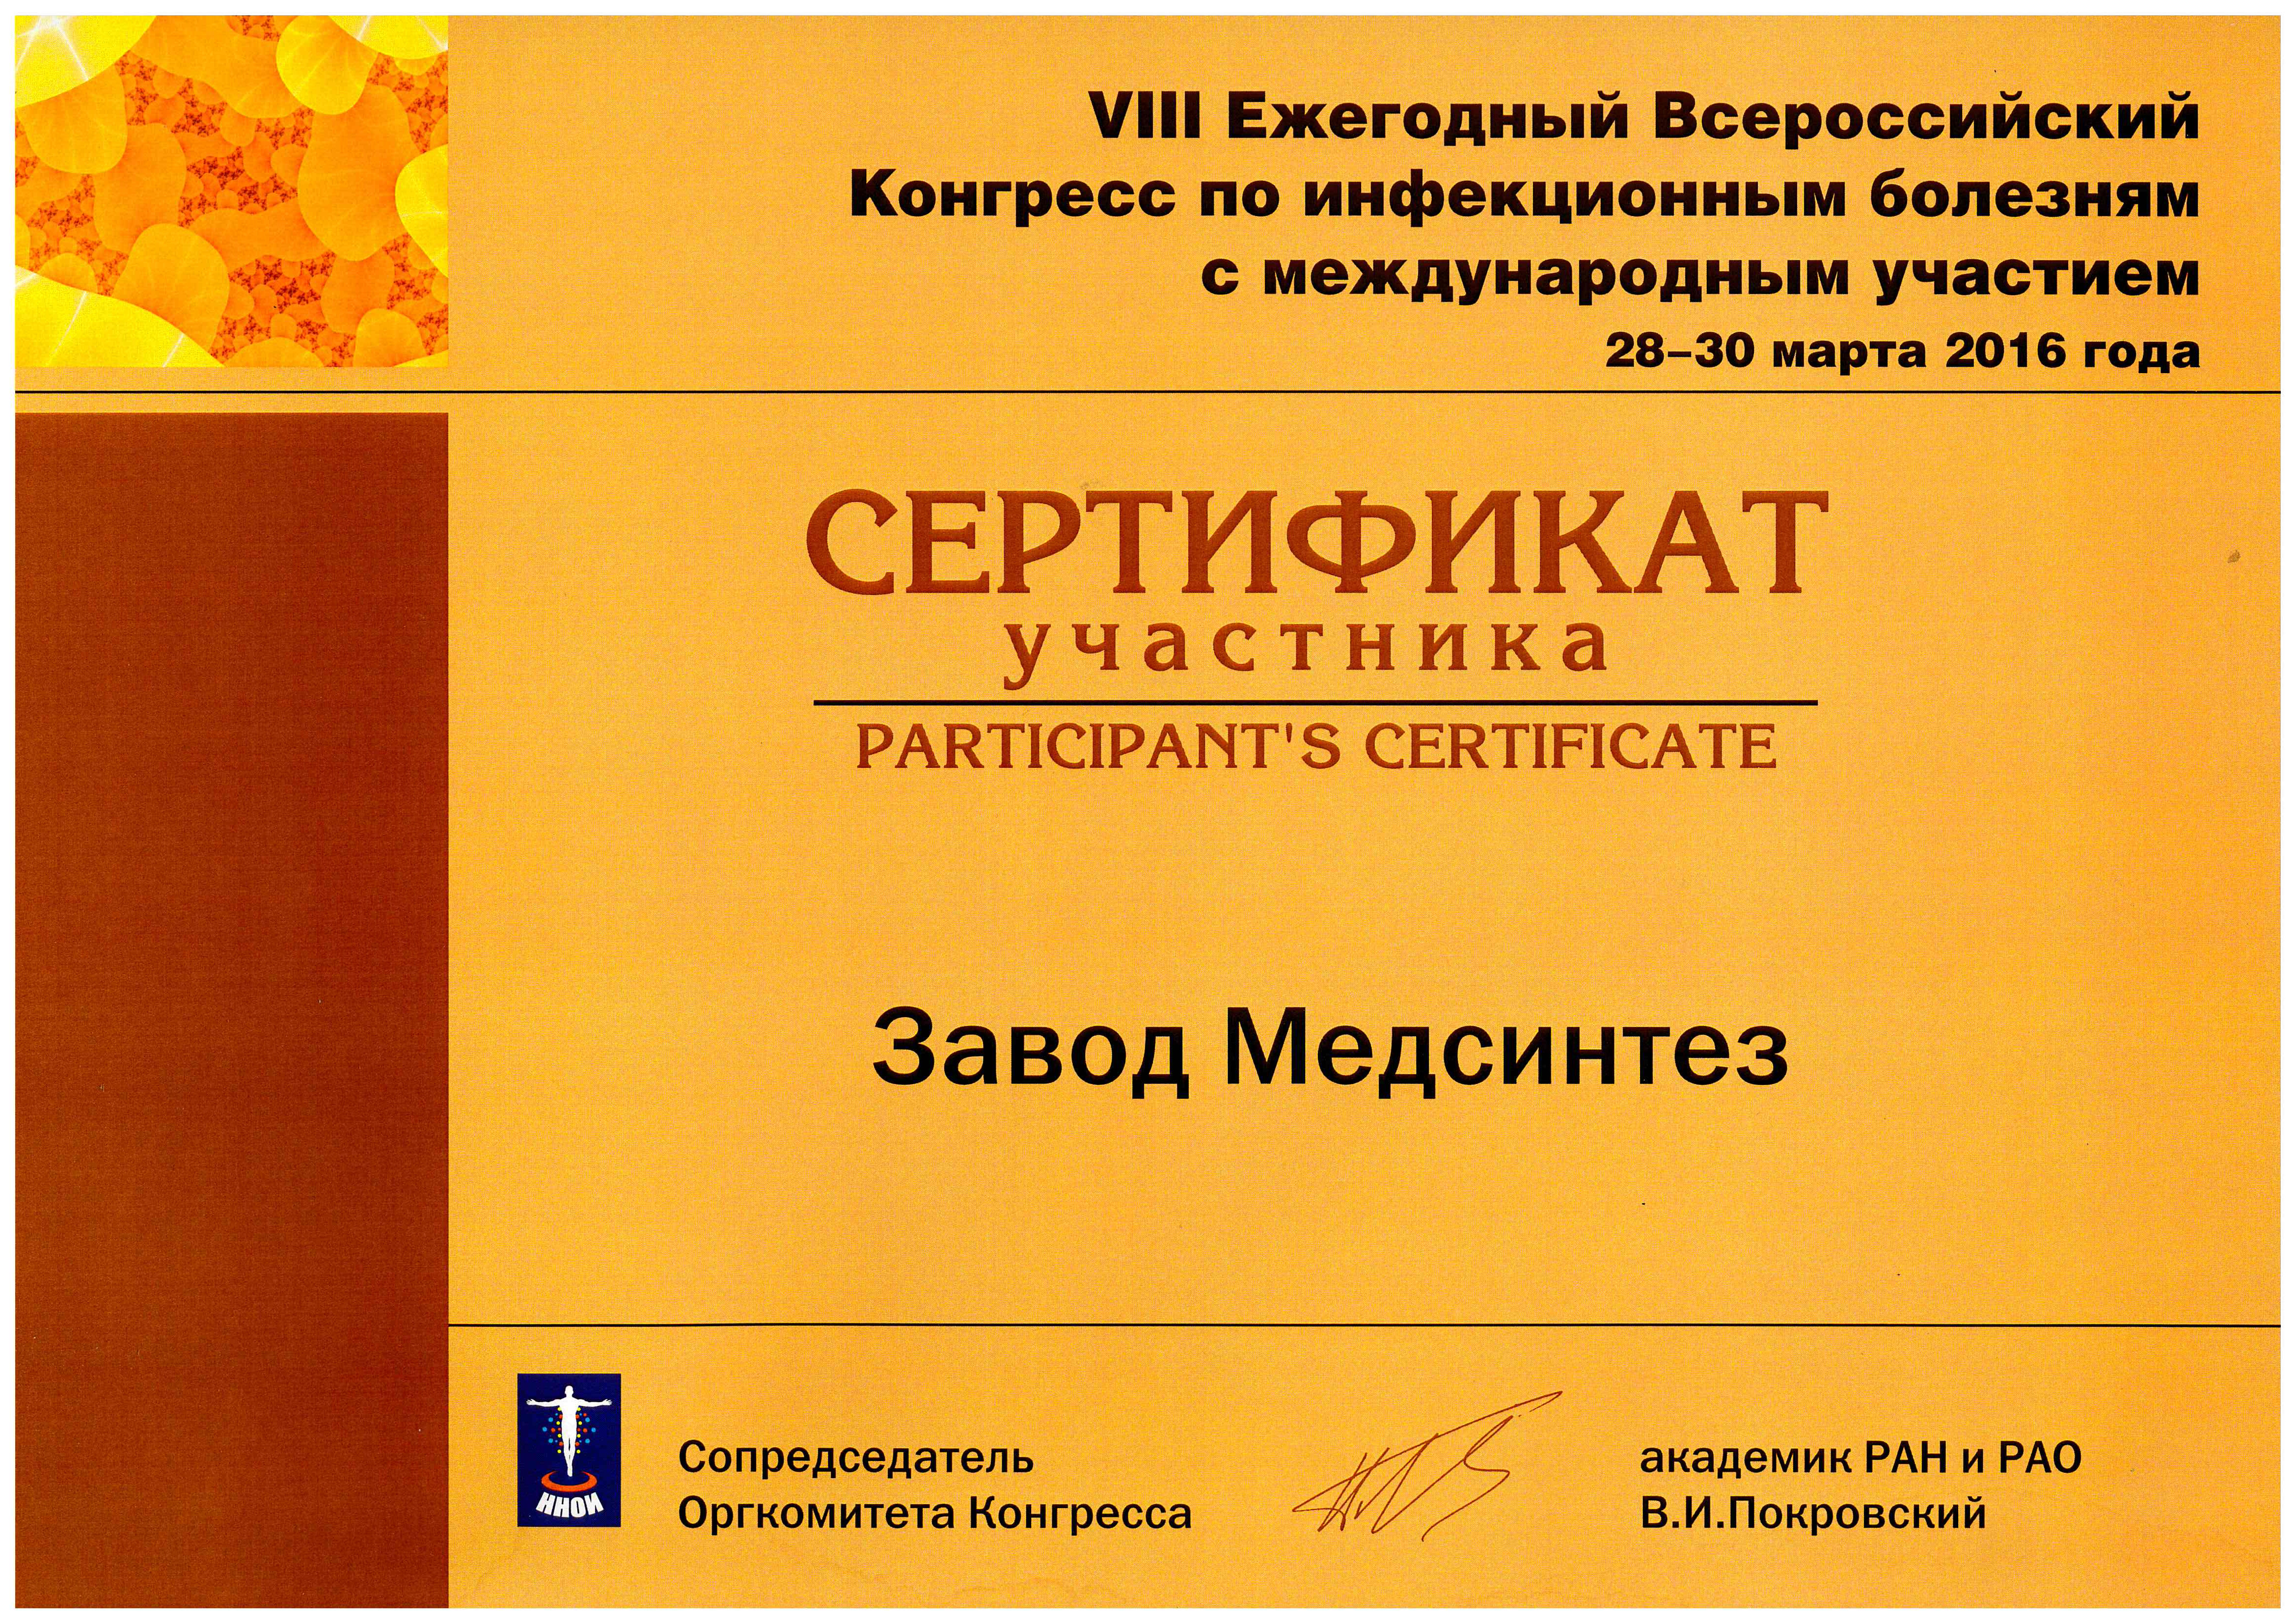 The Certificate of participation in the 8th Annual All-Russian Congress on Infectious Diseases with international participation, March 28-30, 2016, Moscow